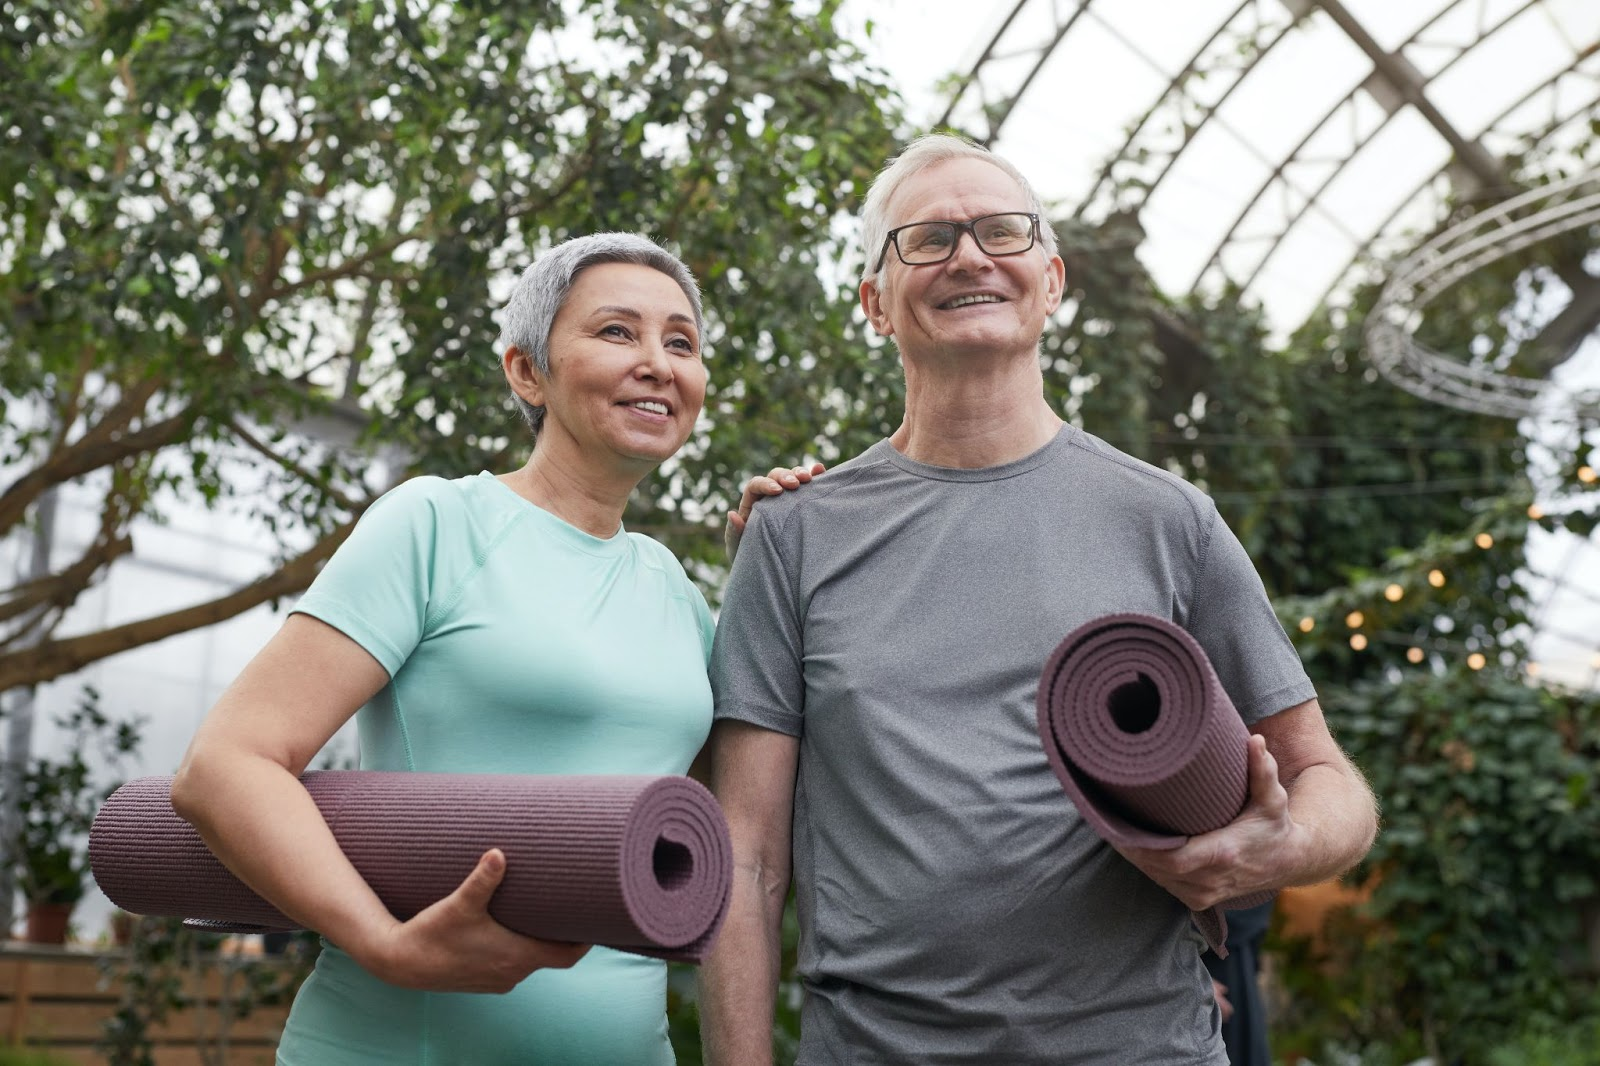 Here are The Best Immune System Booster Tips for Older Adults